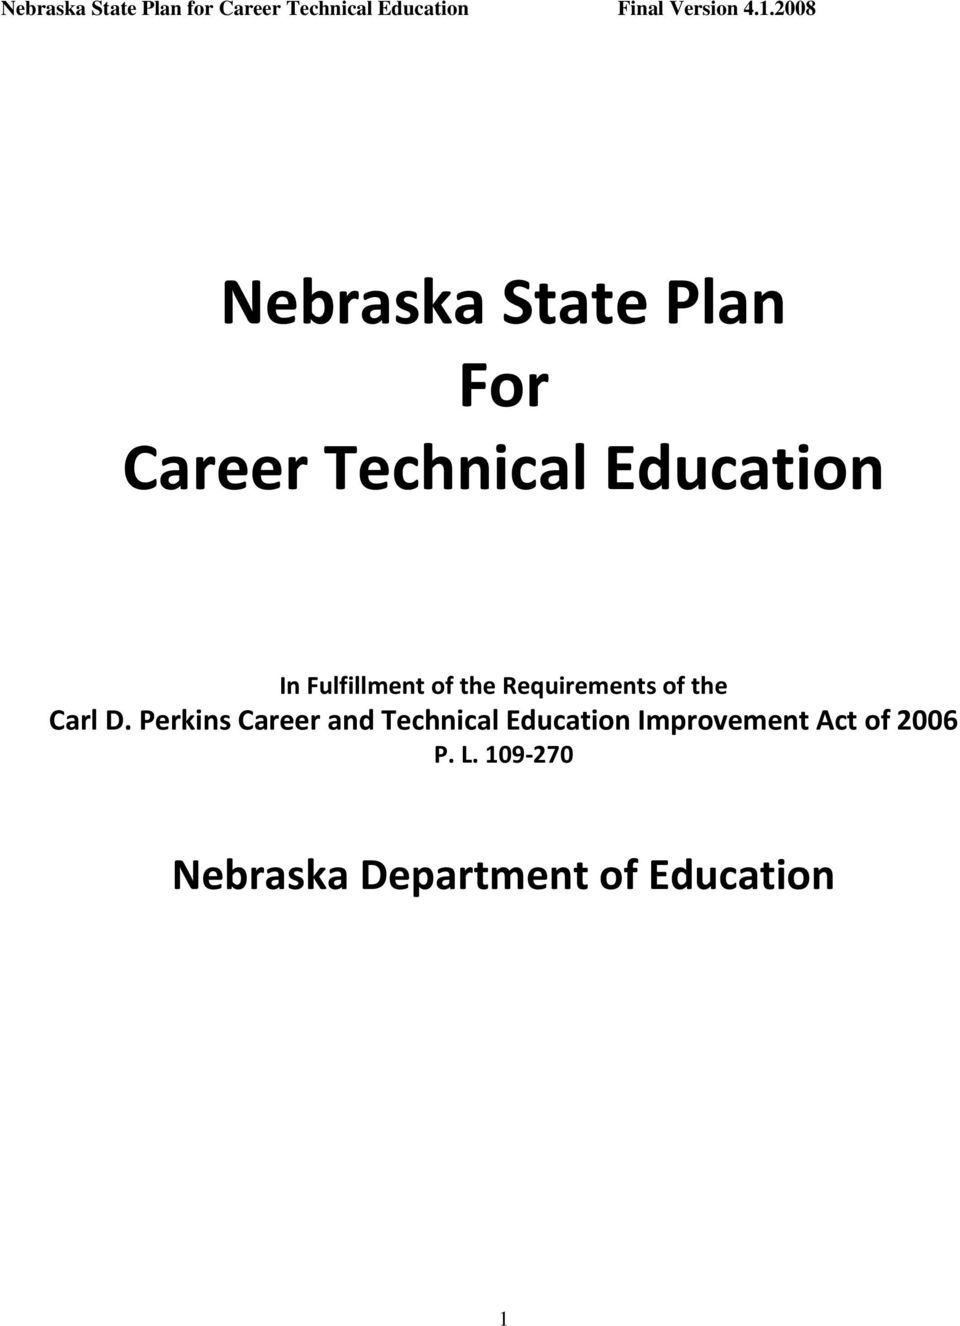 Perkins Career and Technical Education Improvement